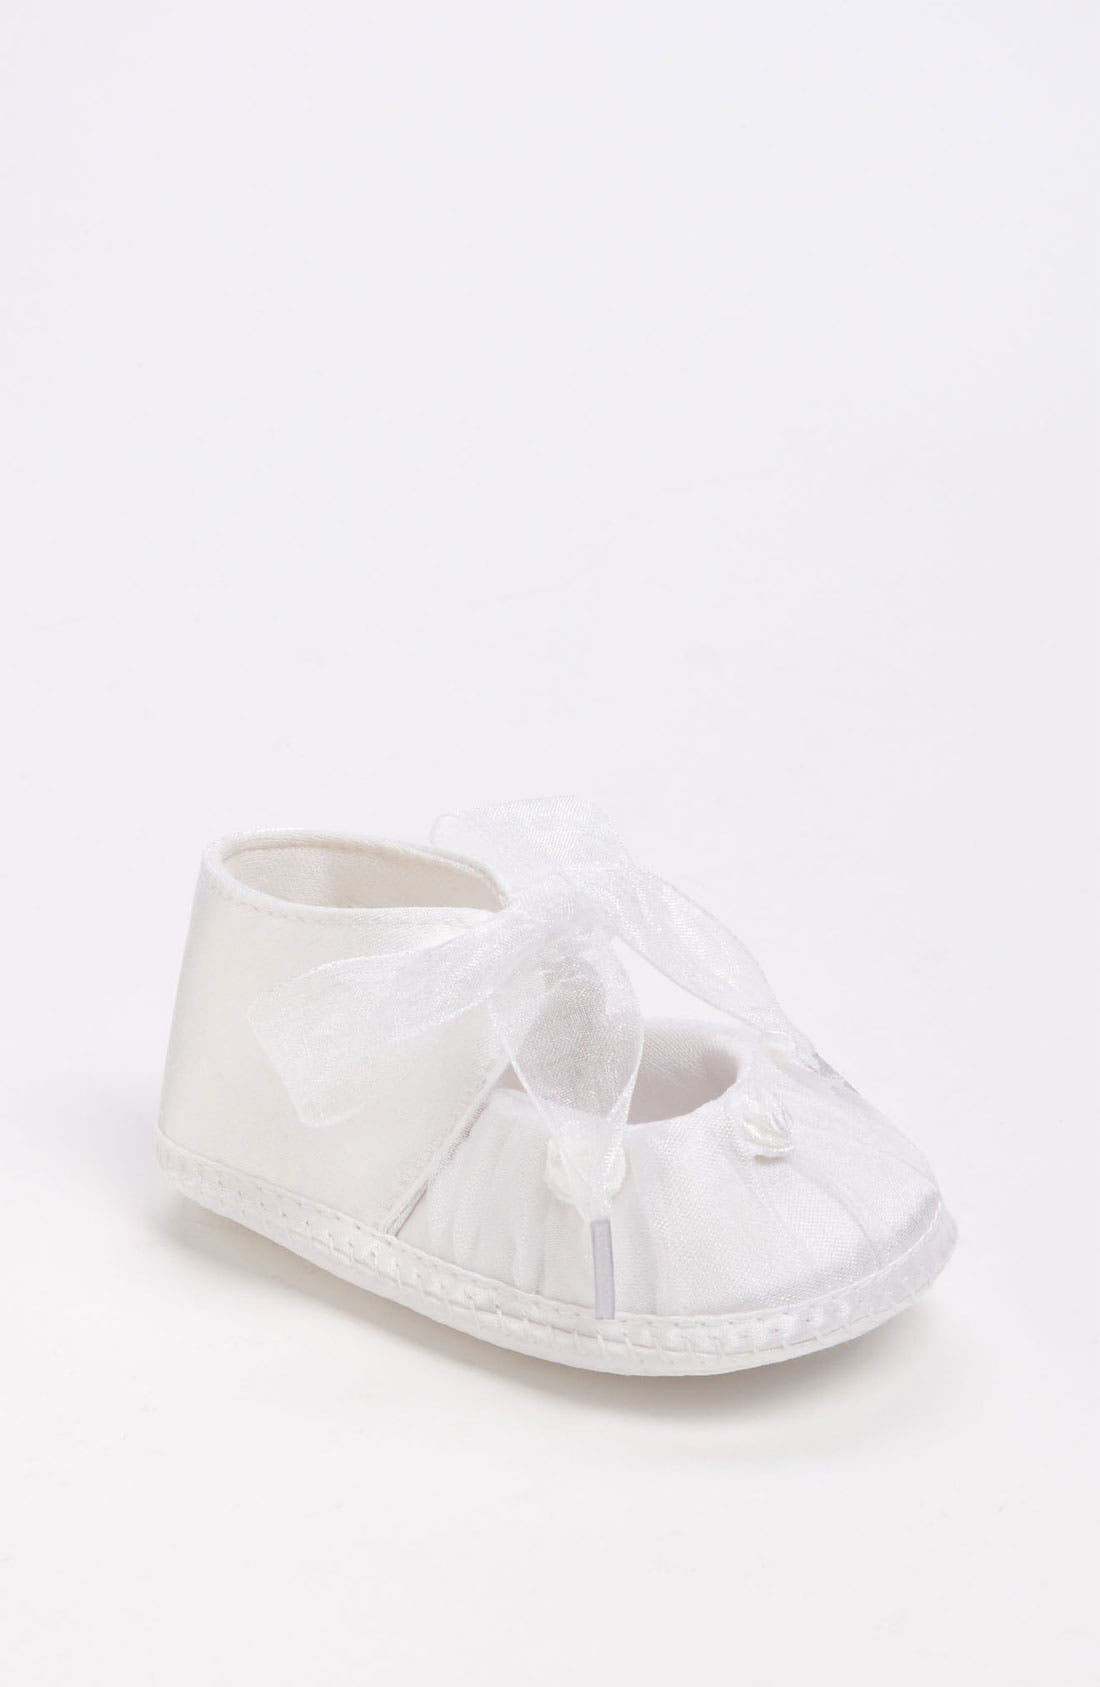 Alternate Image 1 Selected - Designer's Touch 'Cheree' Crib Shoe (Baby)